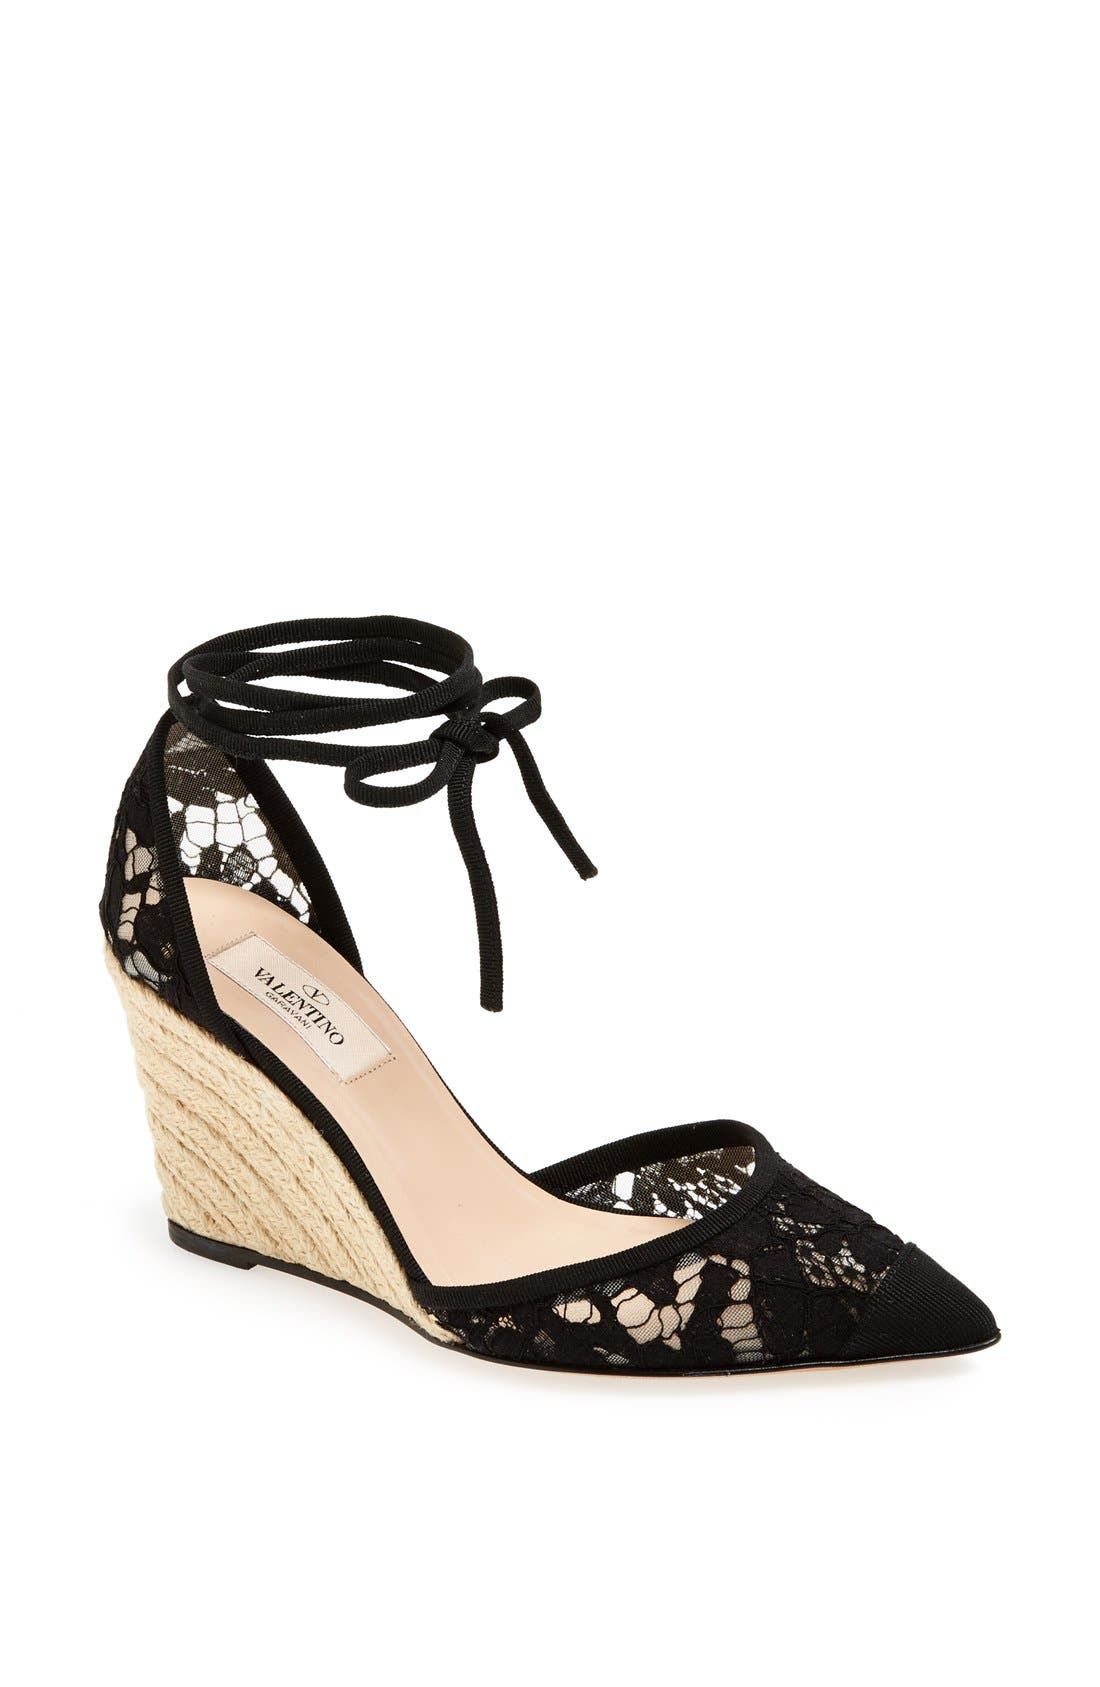 Alternate Image 1 Selected - Valentino 'Lace' Espadrille Wedge